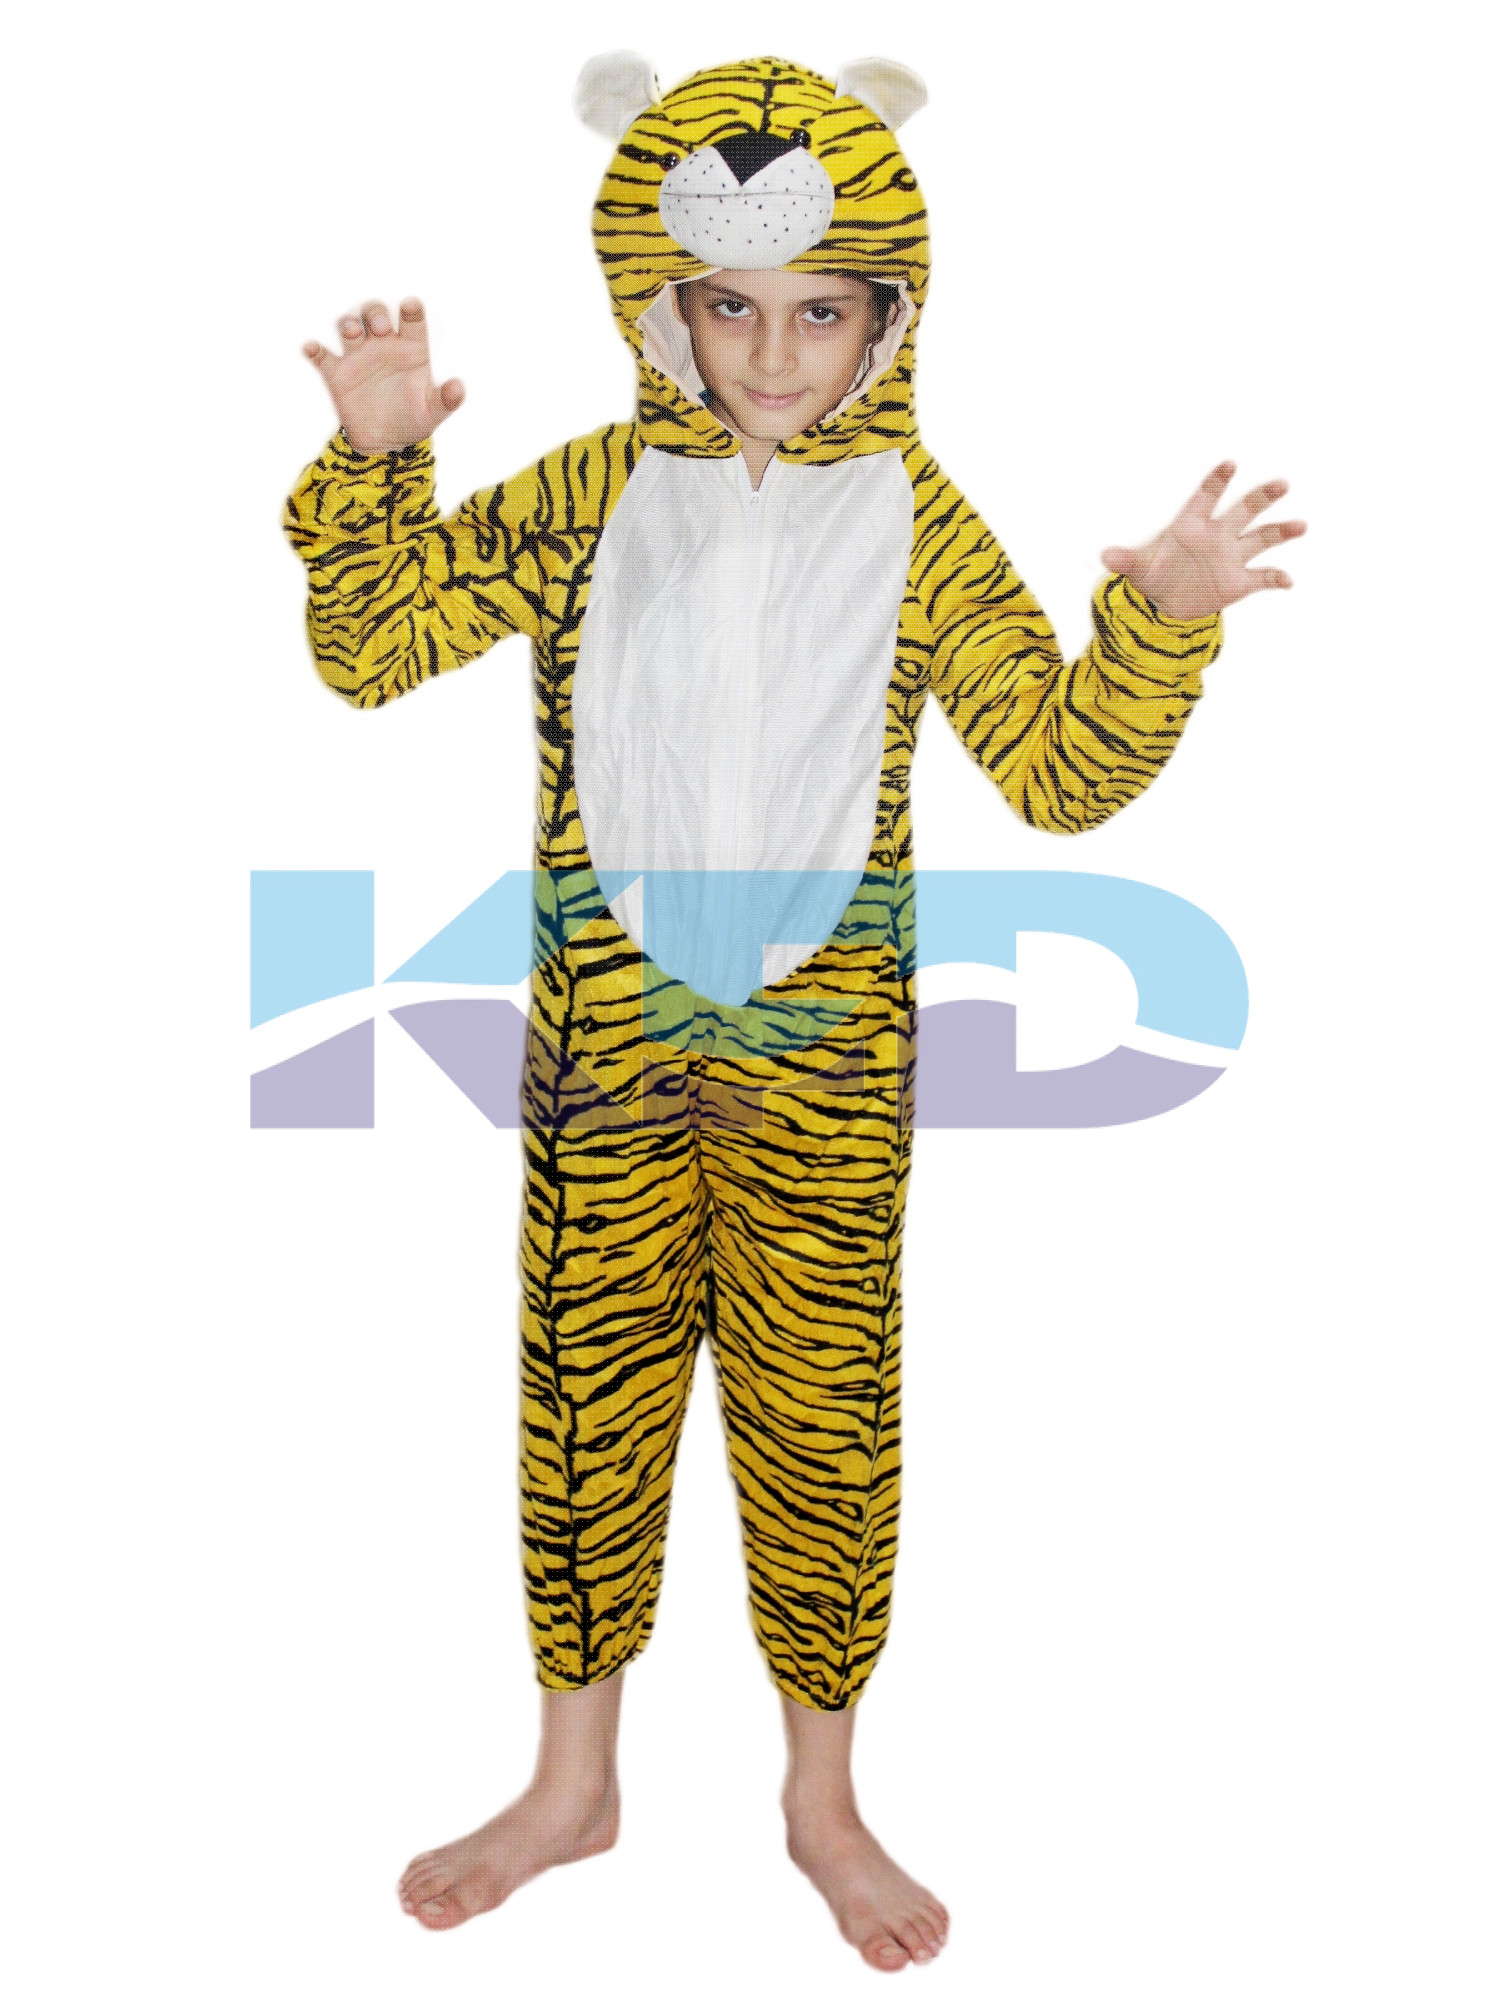 Tiger fancy dress for kids,Wild Animal Costume for Annual function/Theme party/Competition/Stage Shows/Birthday Party Dress